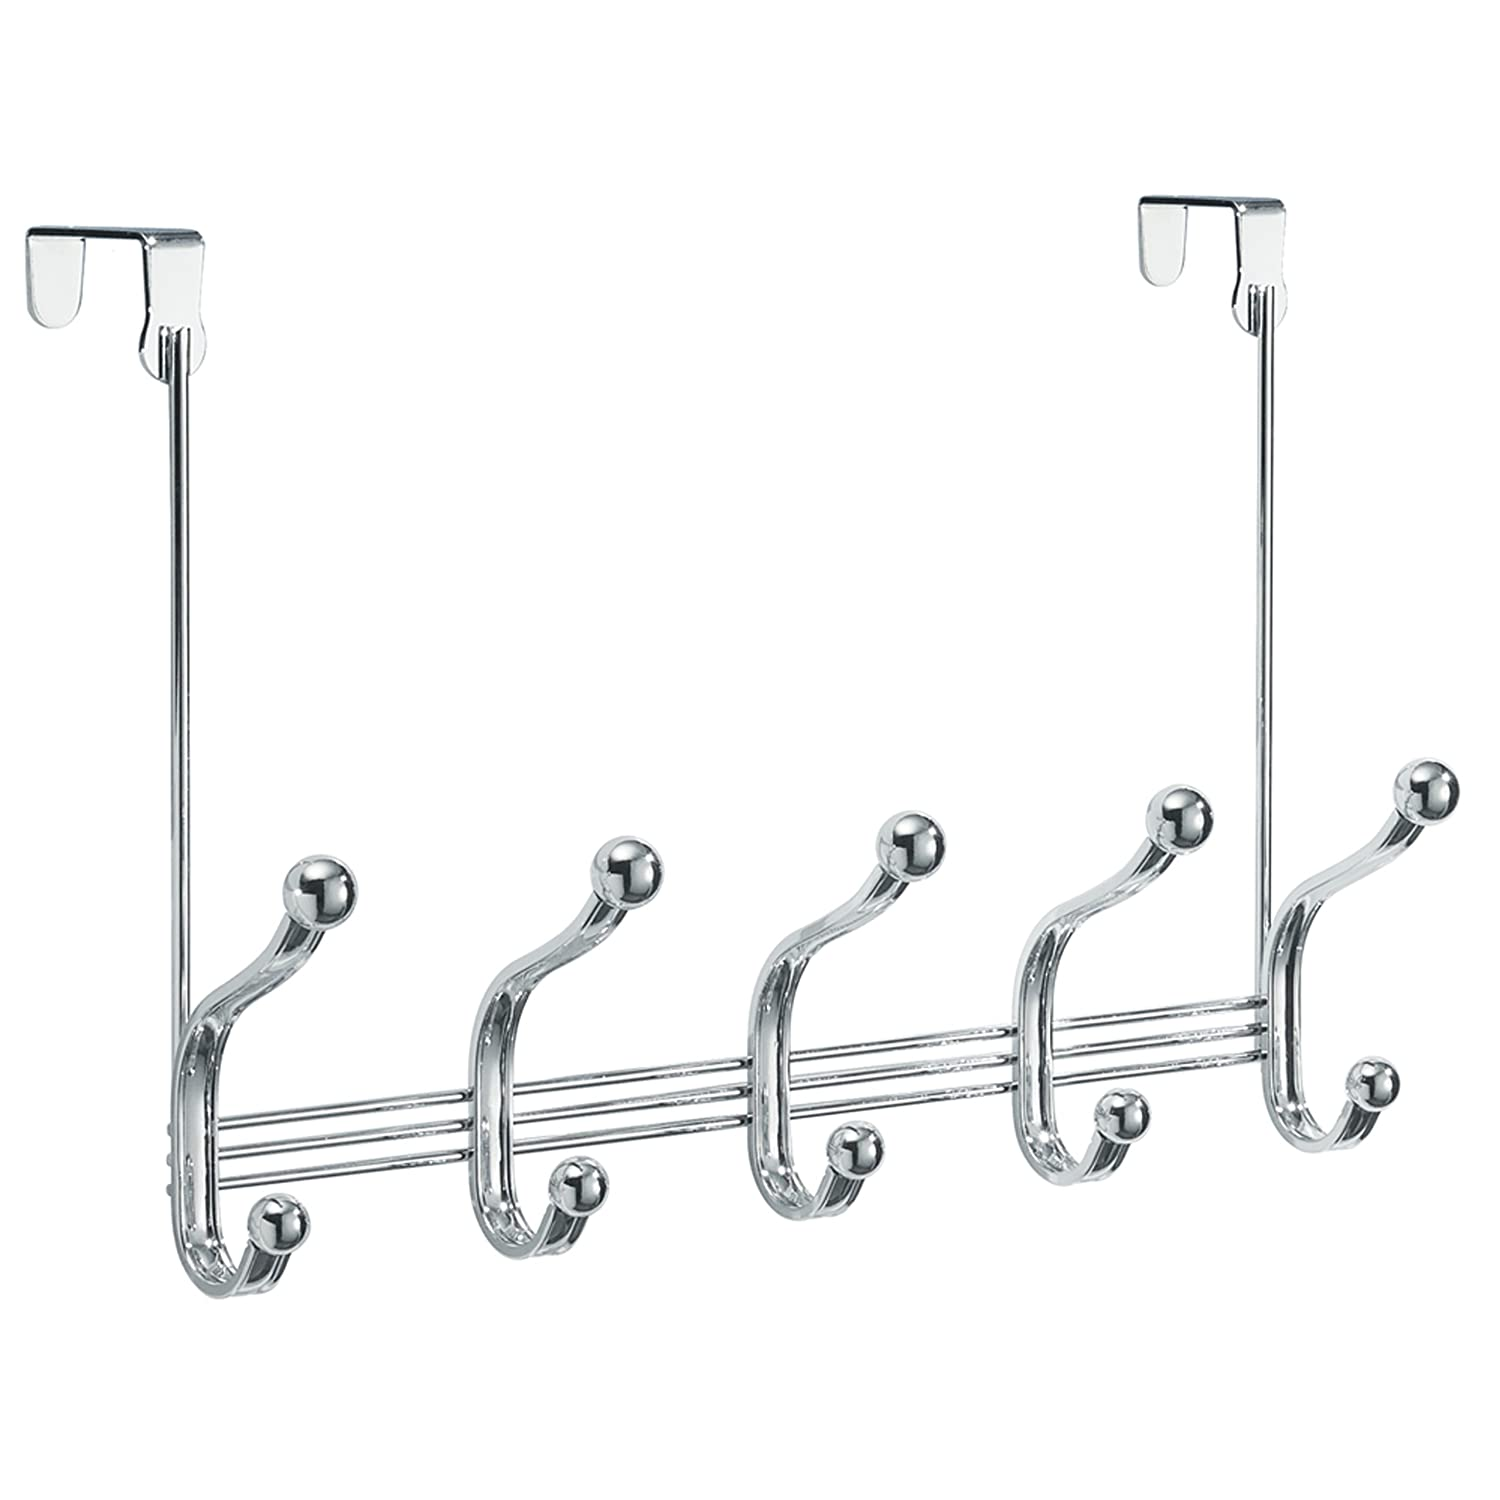 Amazon.com: InterDesign York Lyra Over Door Storage Rack \u2013 Organizer Hooks for Coats Hats Robes Clothes or Towels \u2013 5 Dual Hooks Chrome: Home \u0026 Kitchen